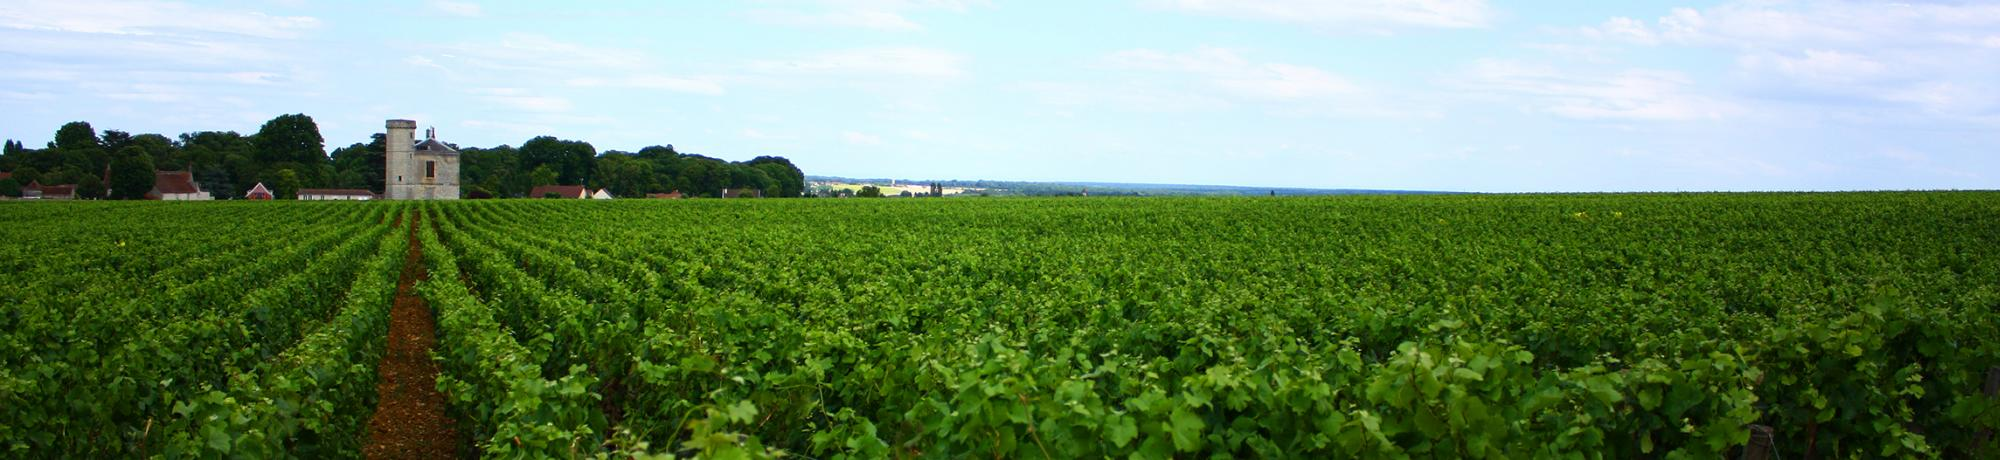 UC Davis Study Abroad, France, Introduction to Winemaking, Header Image, Onsite Page